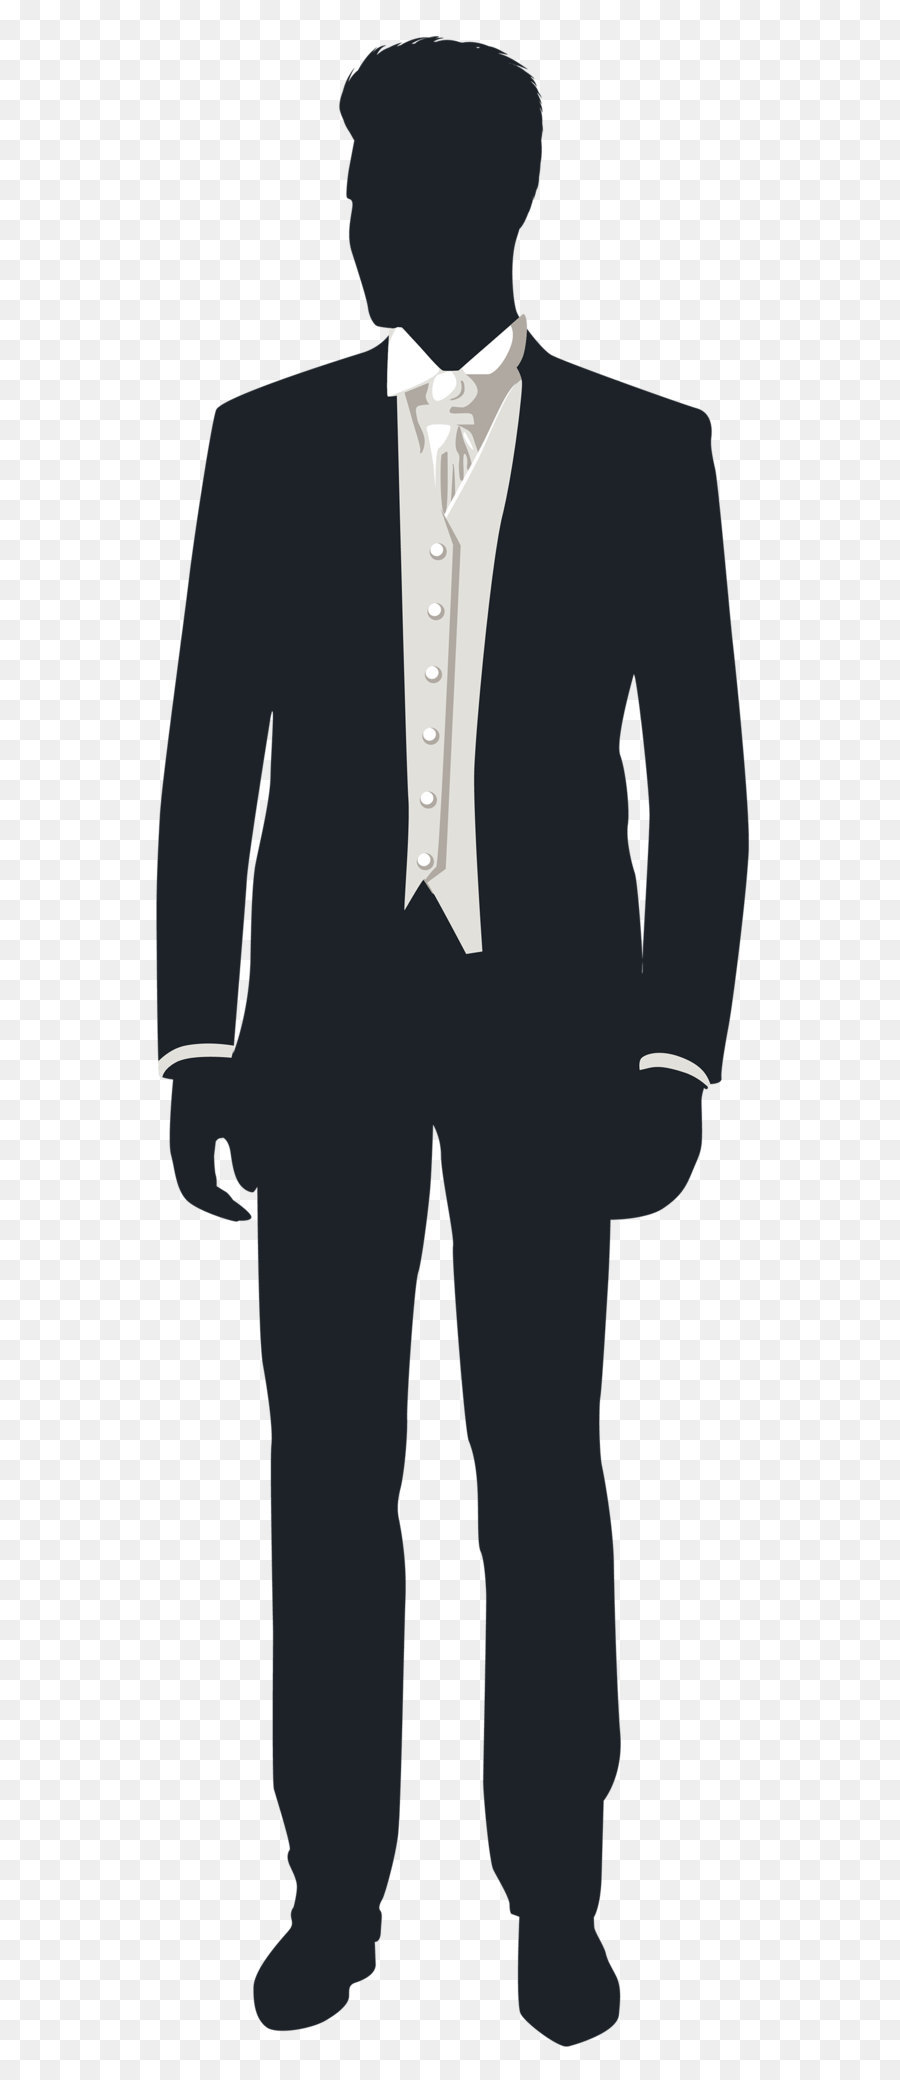 Groom clipart, Groom Transparent FREE for download on.